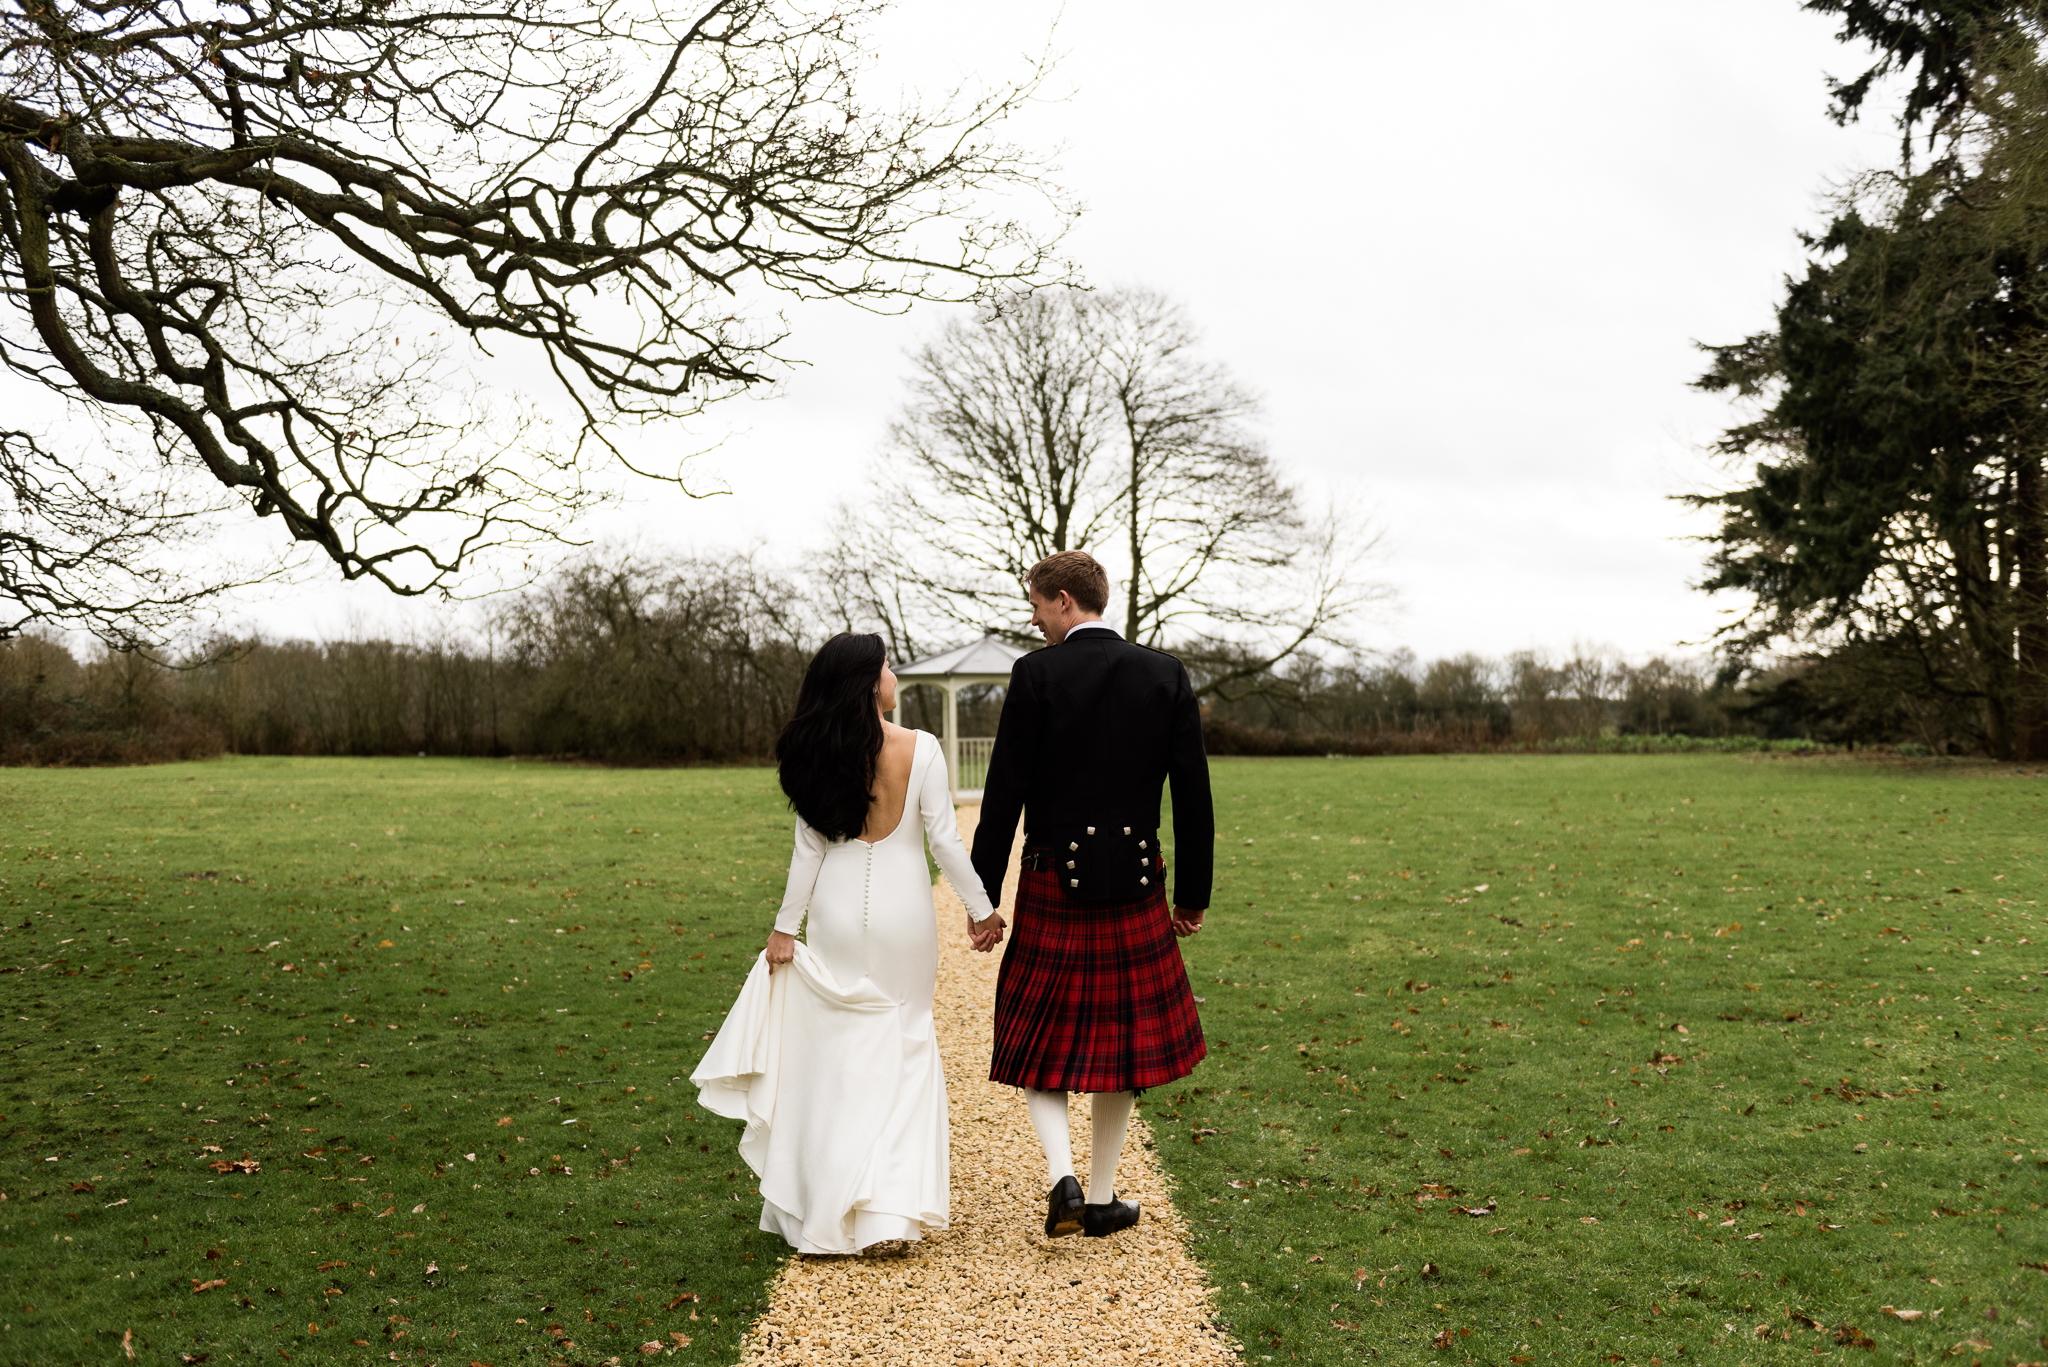 English Winter Wedding Photography at Somerford Hall, Staffordshire Red Bus Double Decker Kilts Bagpiper-44.jpg